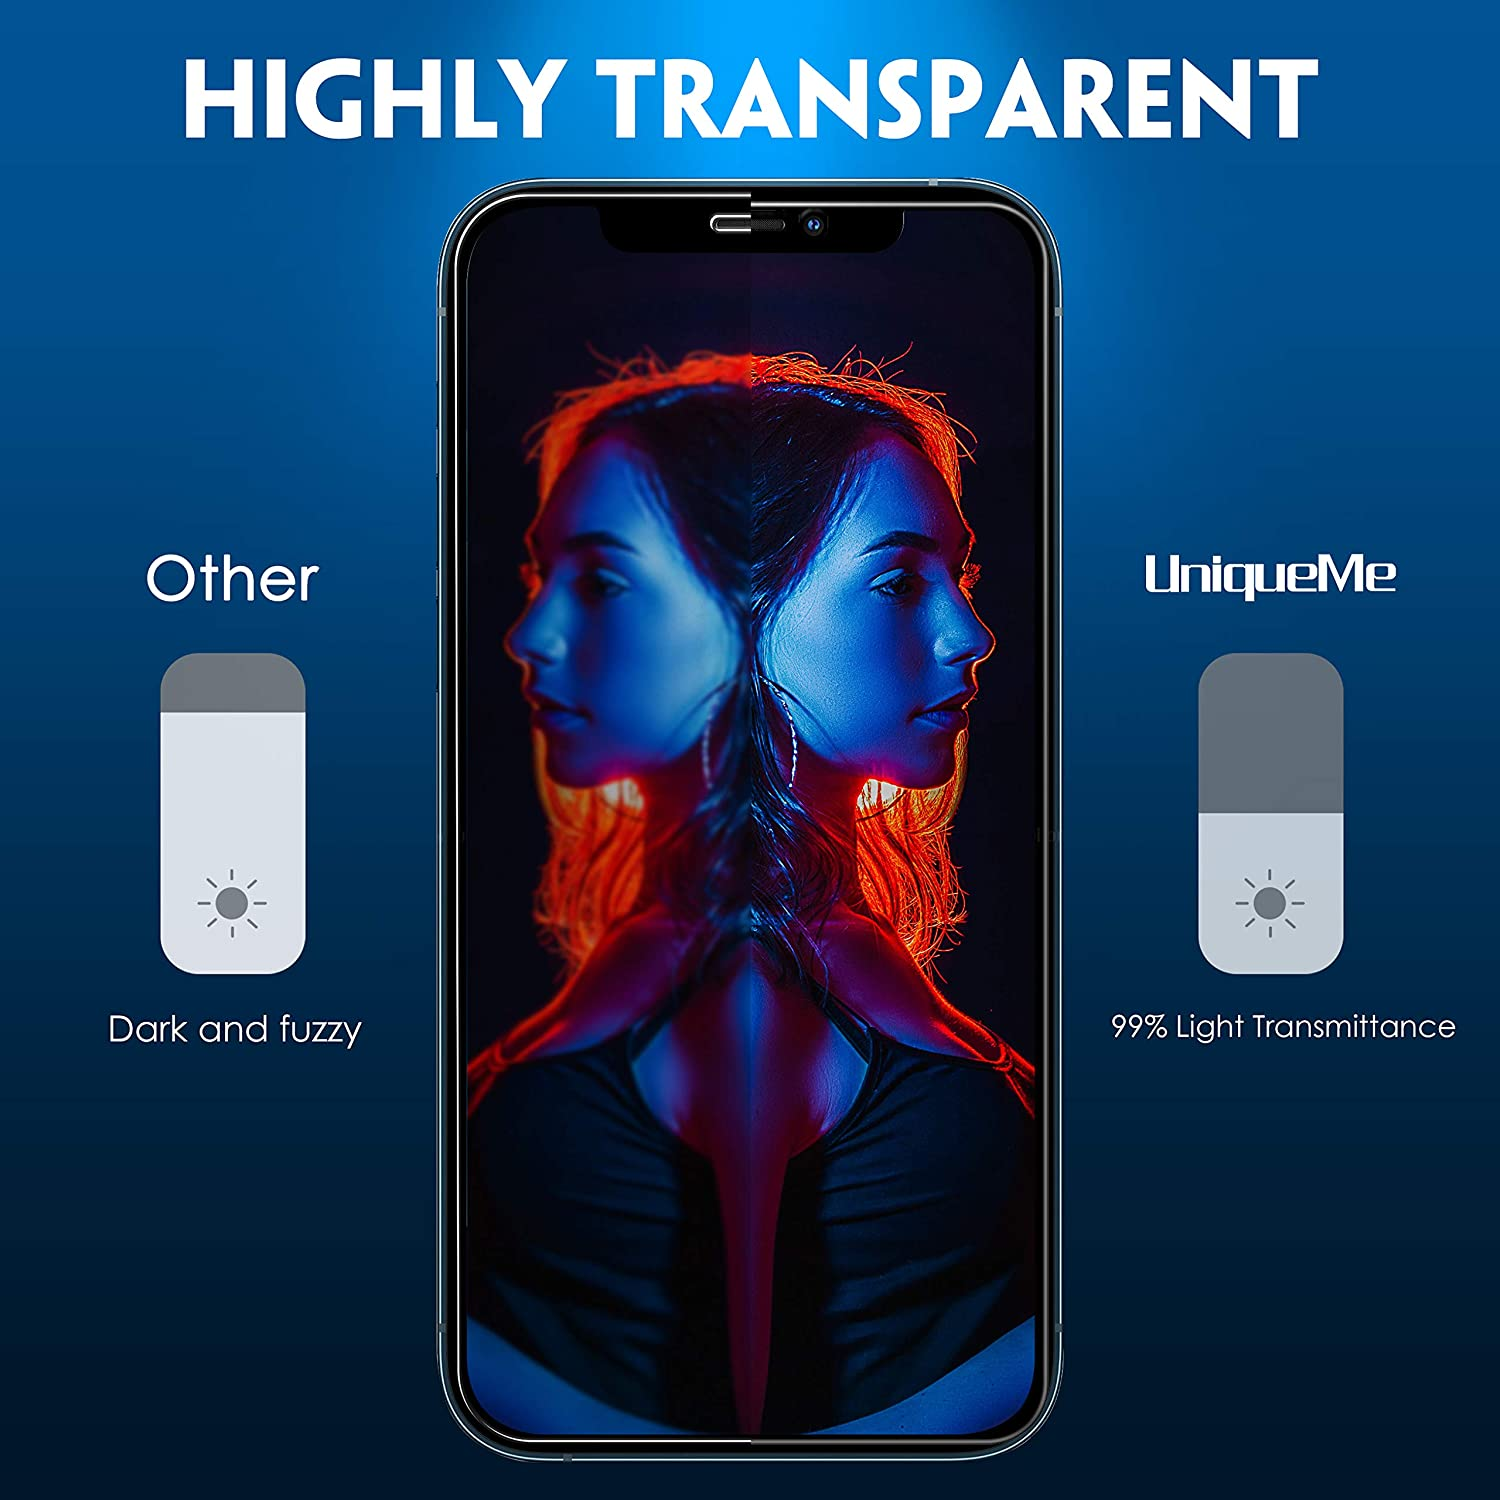 9H Hardness HD Clear Film With Easy installation frame UniqueMe Tempered Glass Privacy Screen Protector Compatible with iPhone 12 Pro Max(6.7 inch), 2 PACK Touch sensitive Bubble Free